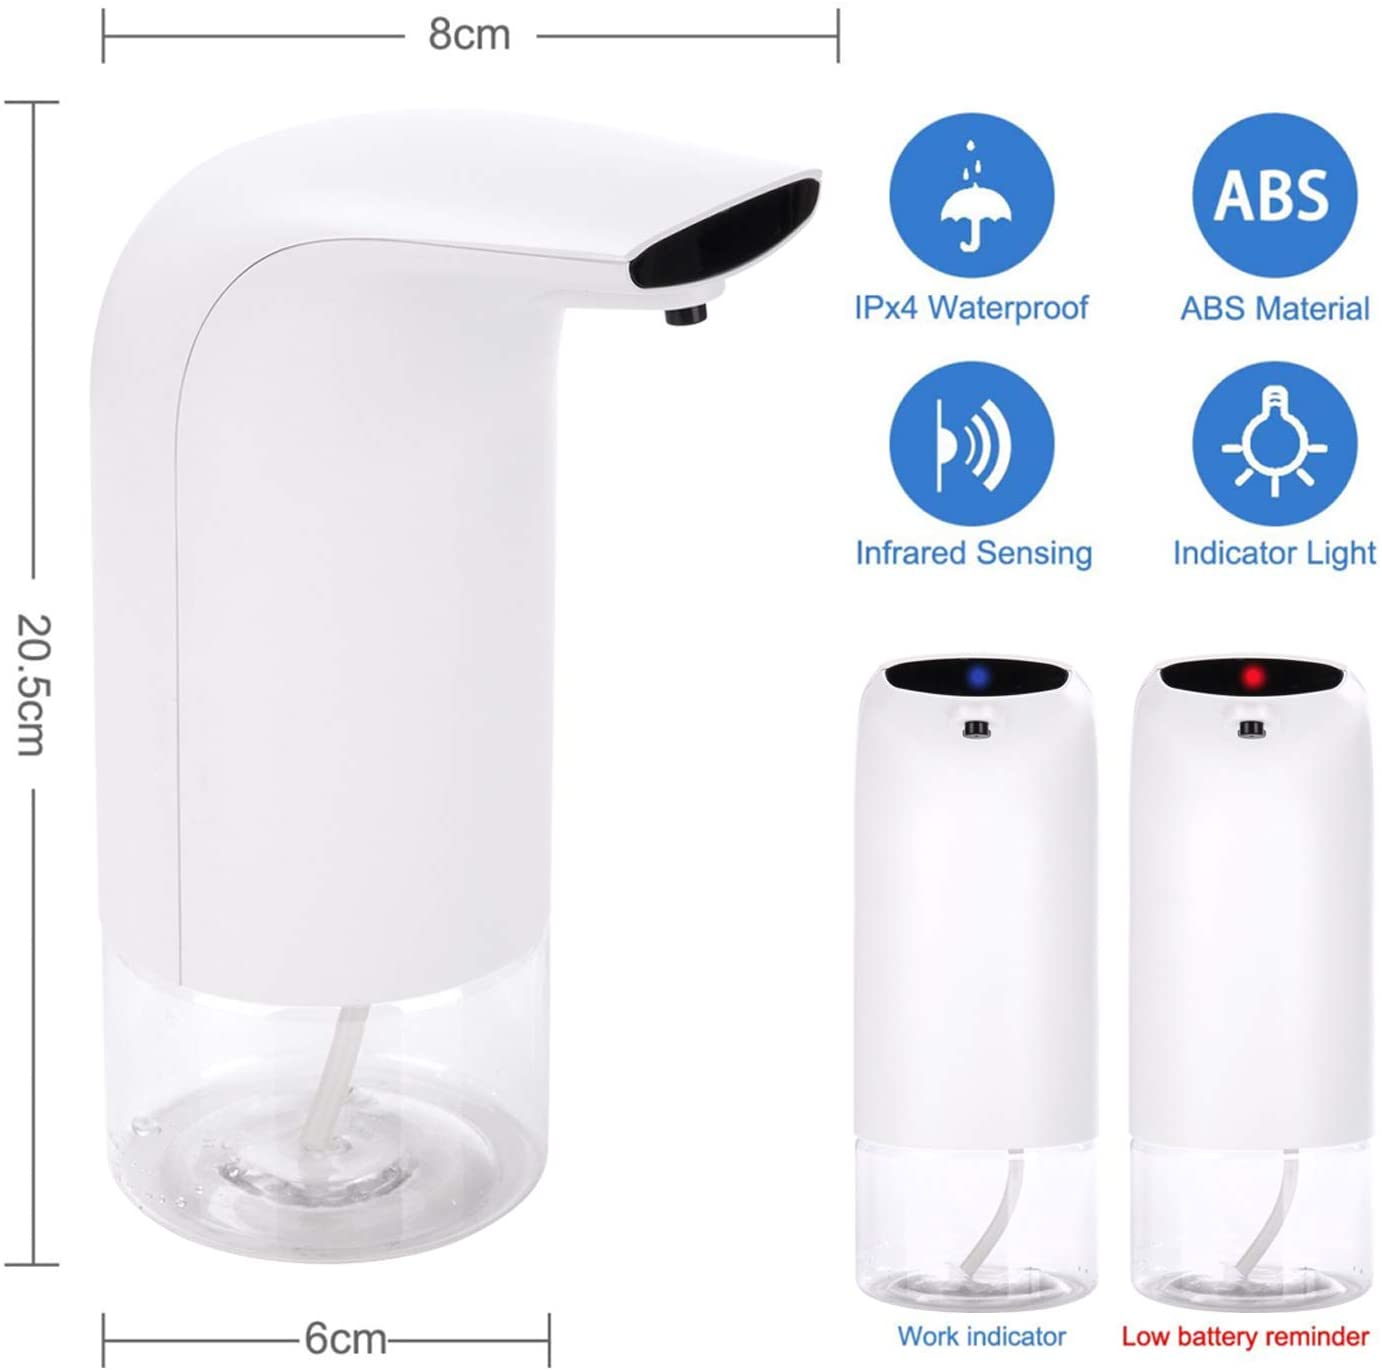 Automatic Touchless Foam Dispenser, Foaming Hand Soap Dispenser, Battery Powered Soap Dispenser Countertop with Smart Infrared Sensor for Bathroom Kitchen Toilet Office Hotel, 10.1oz / 300ml